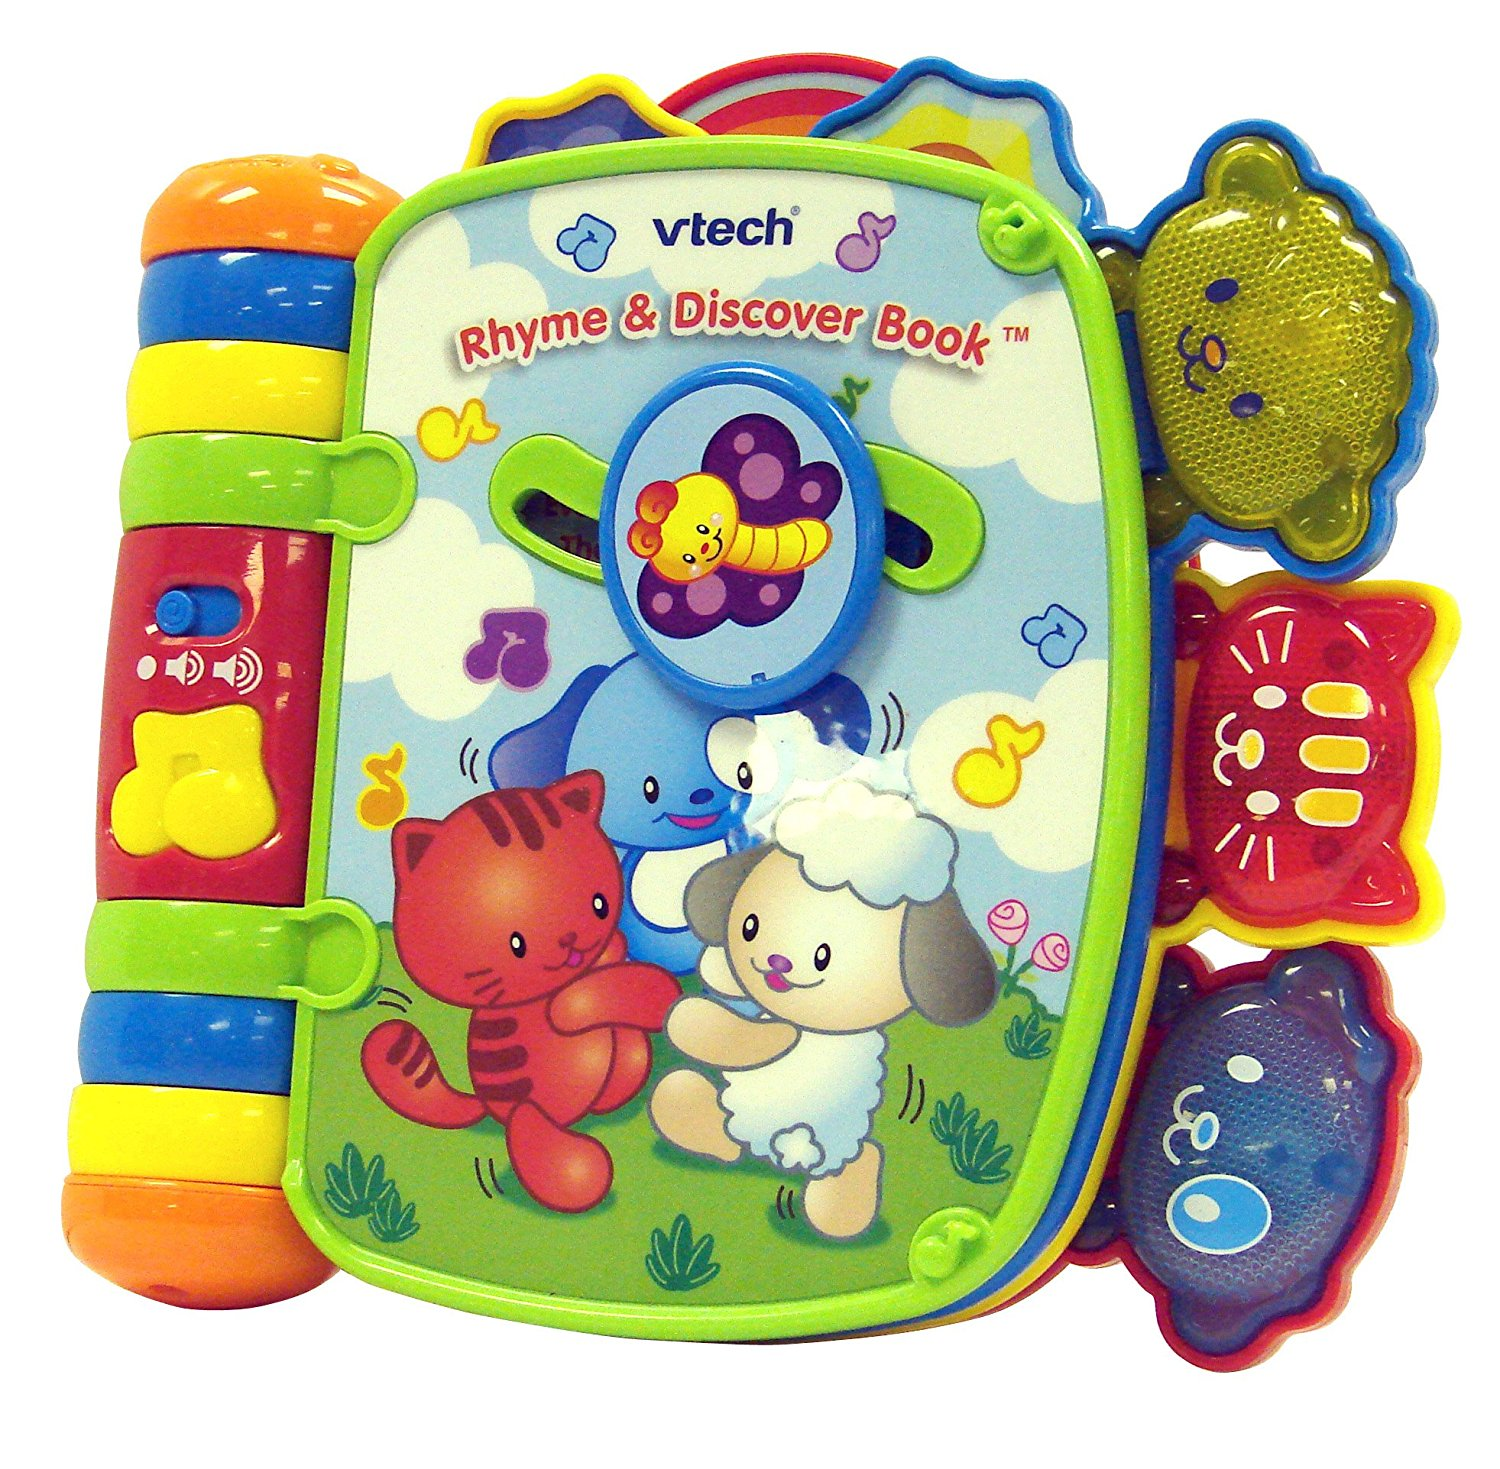 Rhyme and Discover Book (Discontinued manufacturer), USA, Brand VTech by